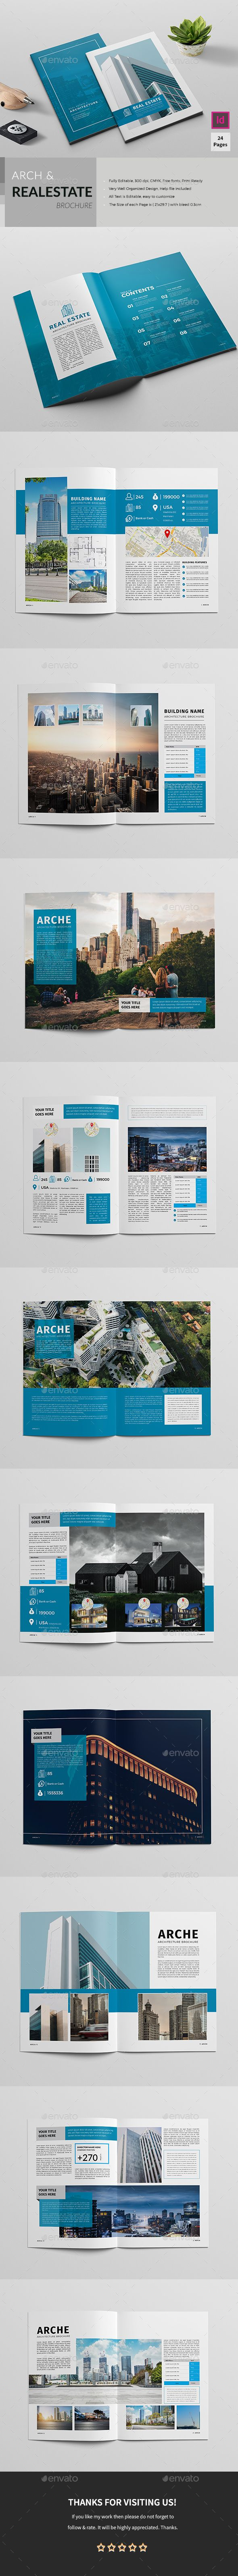 Real EstateArchitecture Brochure  Brochure Template Brochures